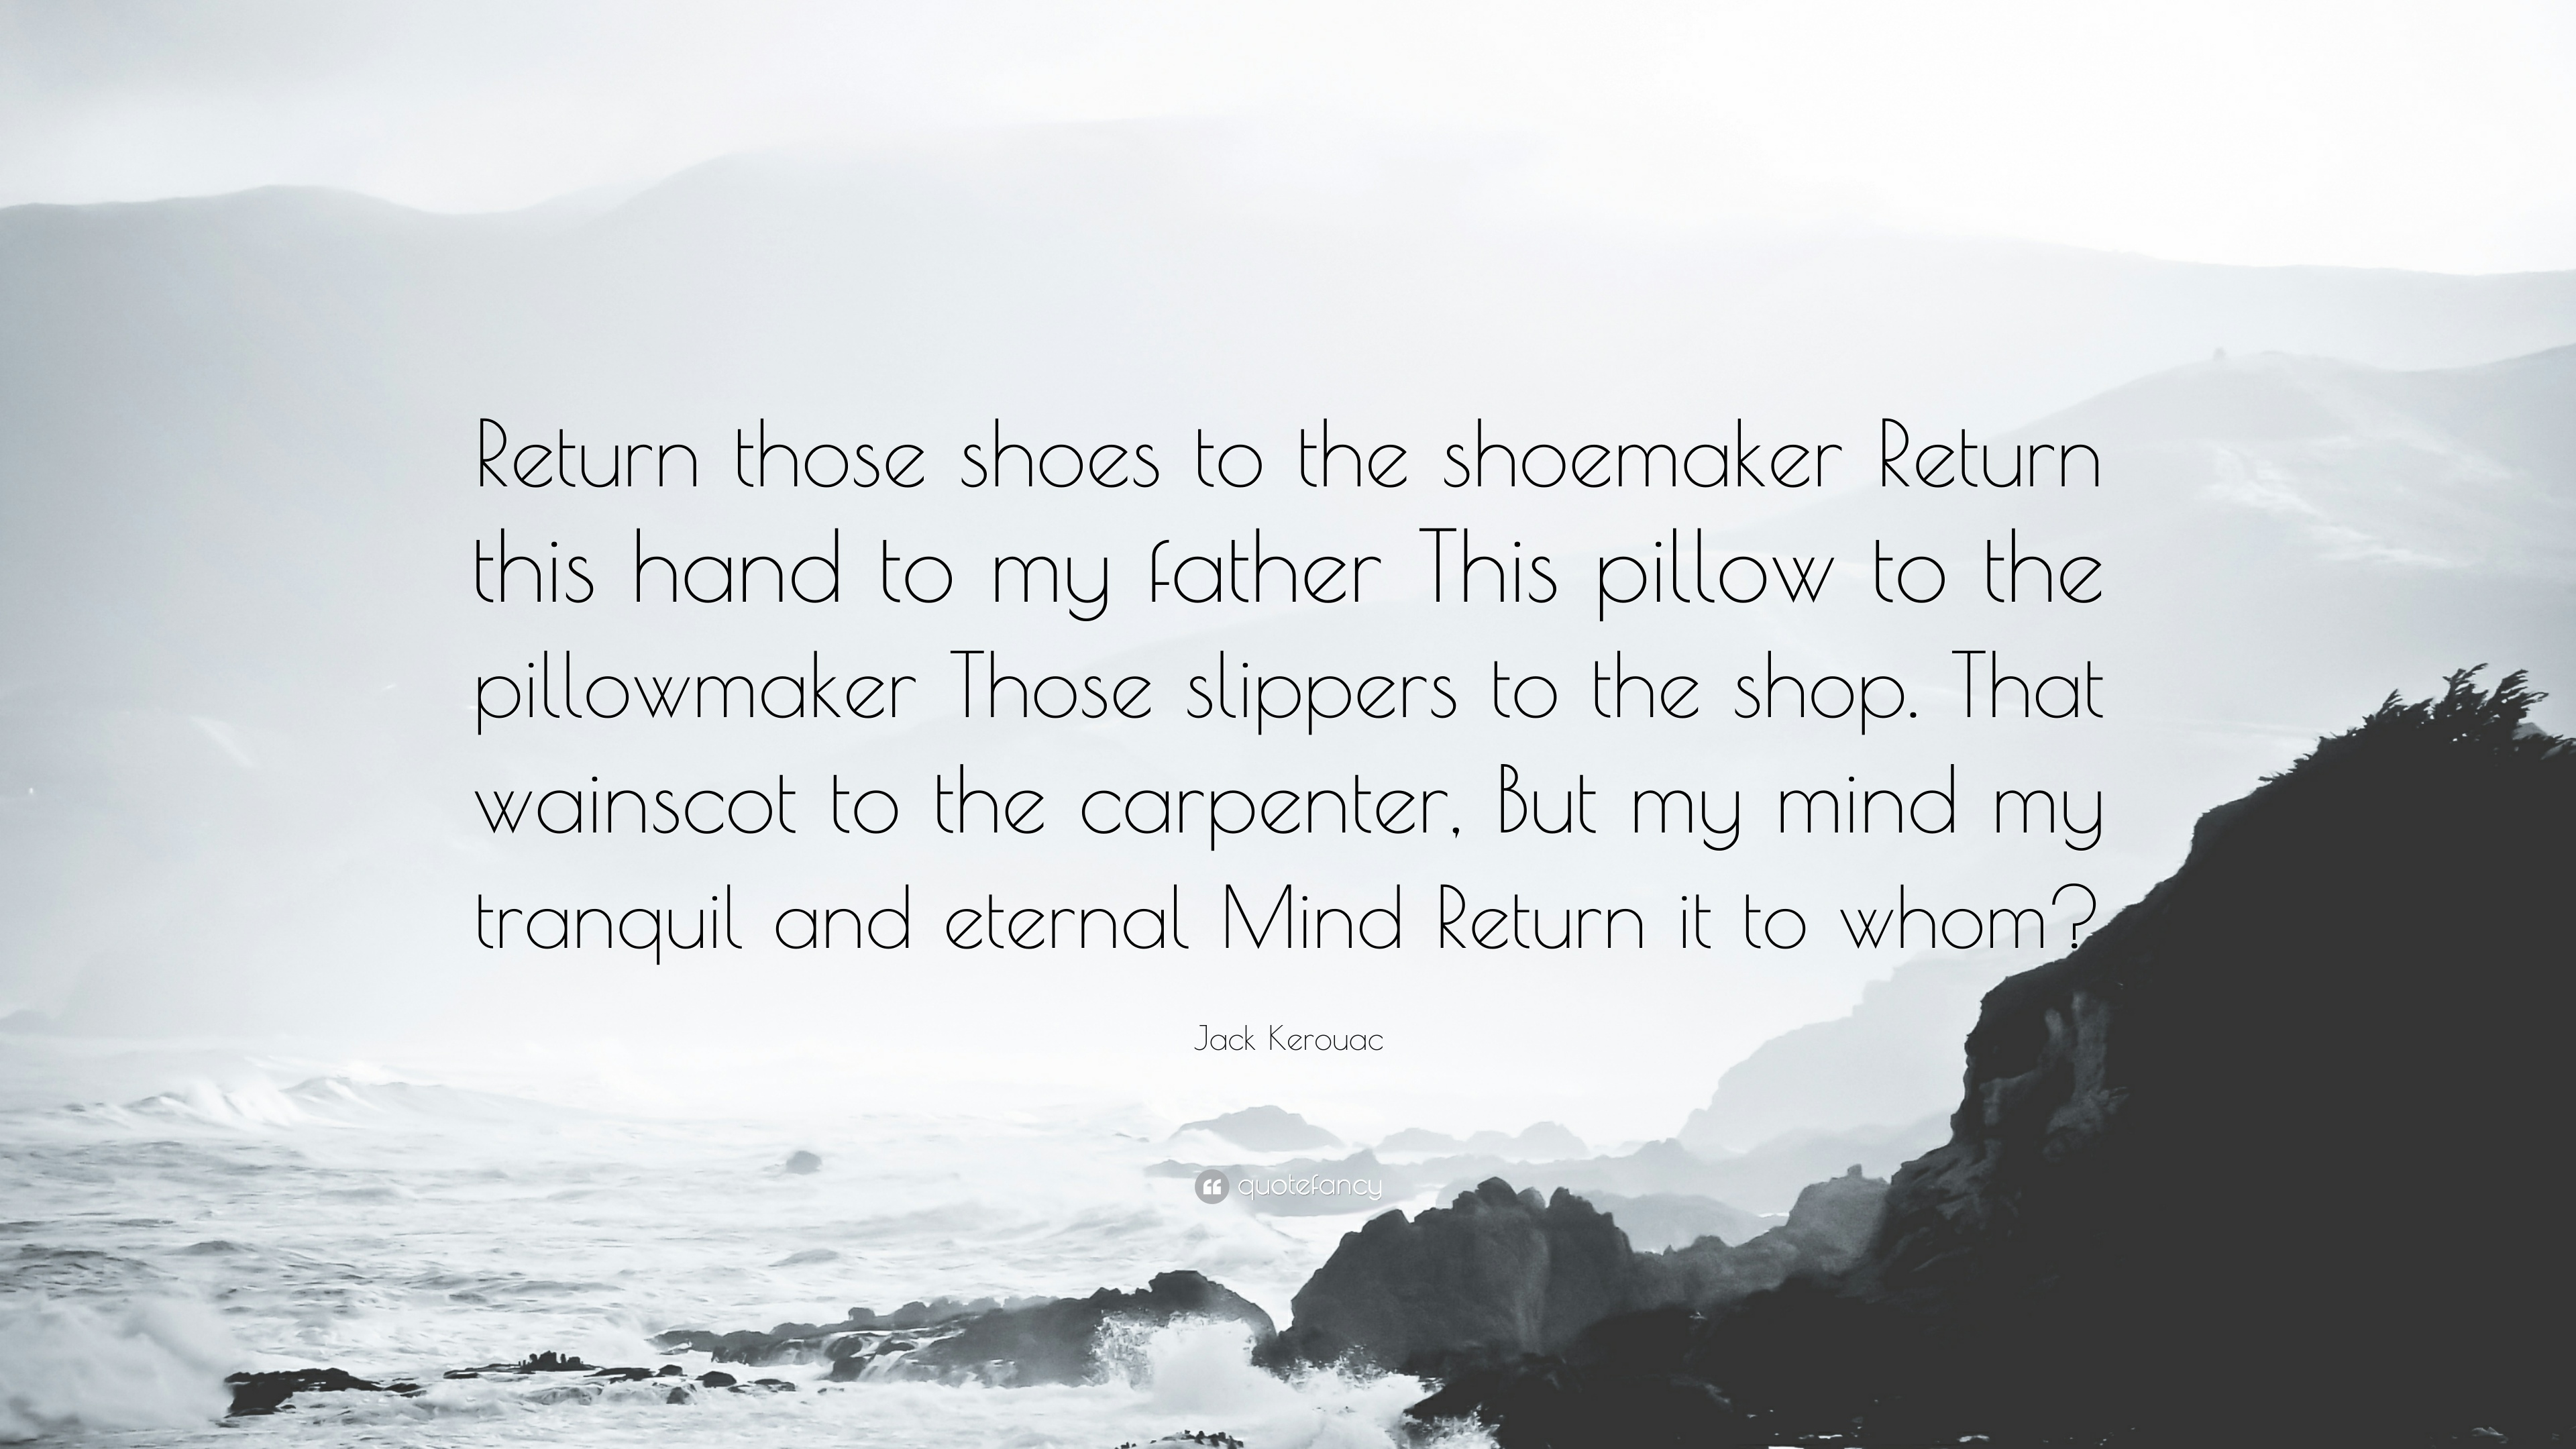 jack kerouac quote return those shoes to the shoemaker return this